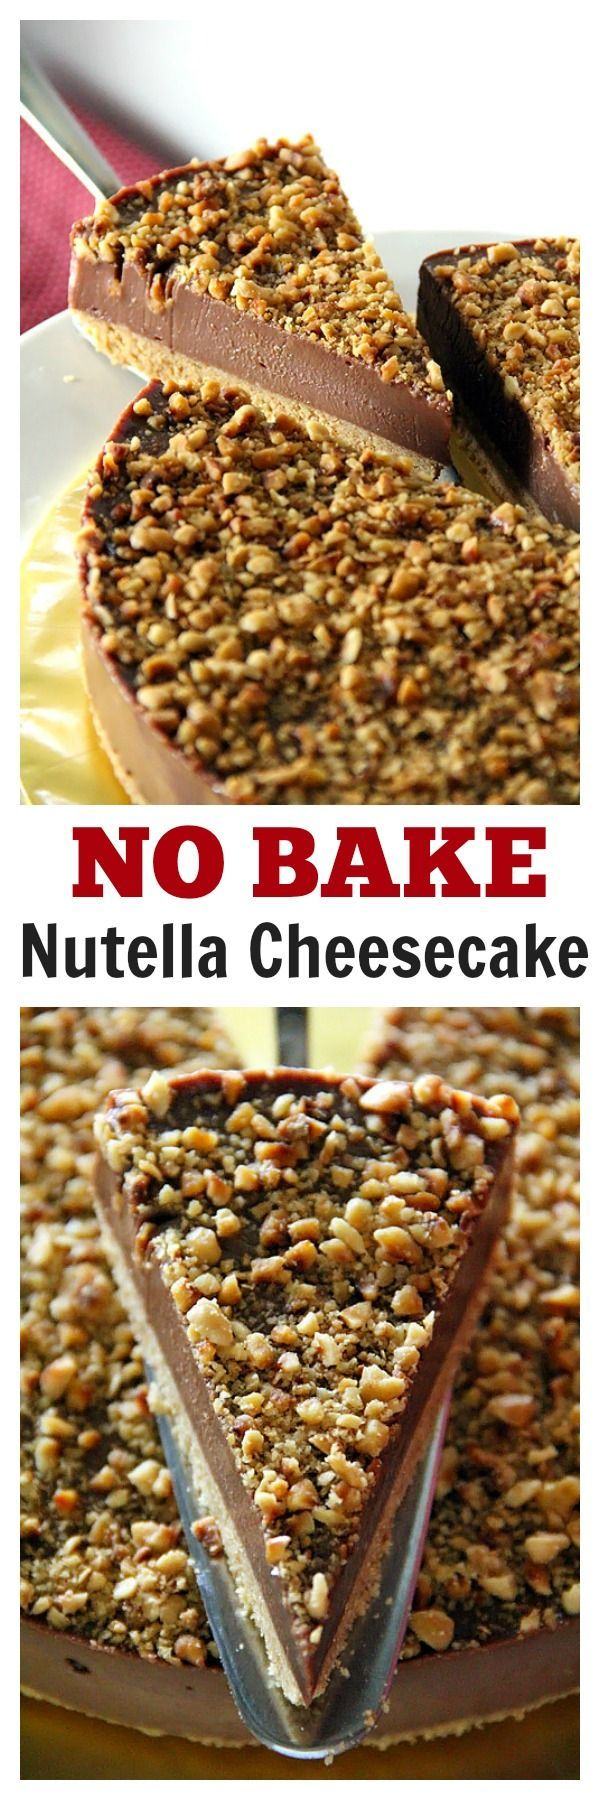 Nutella Cheesecake → Makes 1 cake | Prep Time: 20 mins | Bake Time: None (refrigerate for at least 4 hours) Original Recipe Source: Nigella Lawson → http://www.nigella.com/recipes/view/nutella-cheesecake Reprint → http://rasamalaysia.com/nutella-cheesecake-recipe/2/